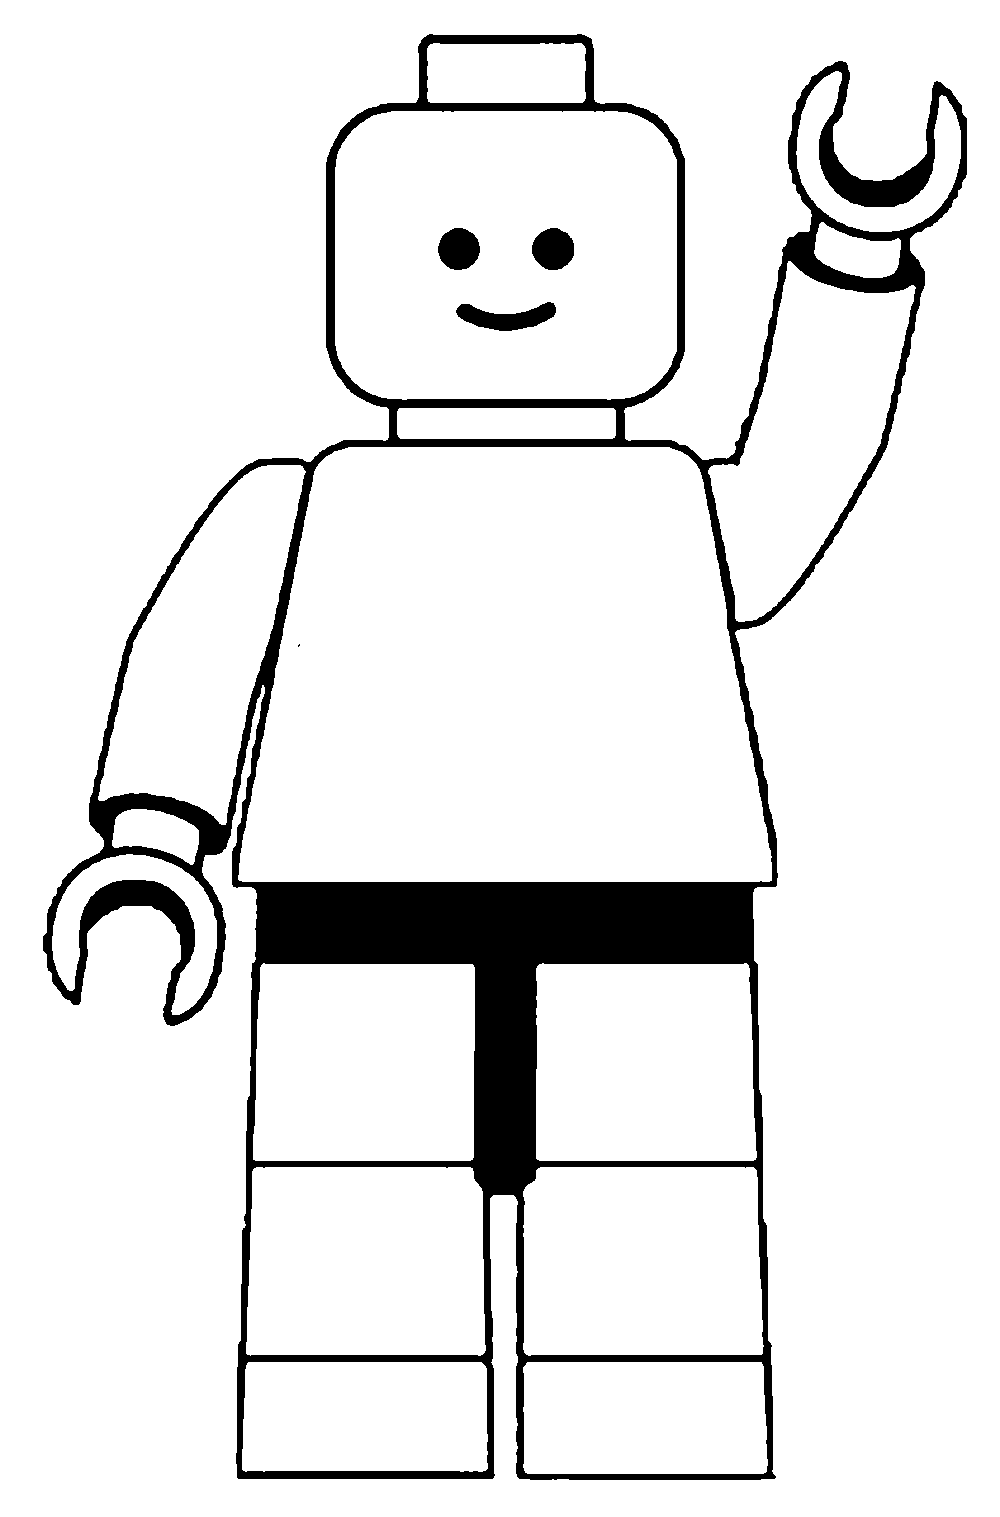 1000x1517 Lego Man Clip Art Black And White Craft + Gift Ideas